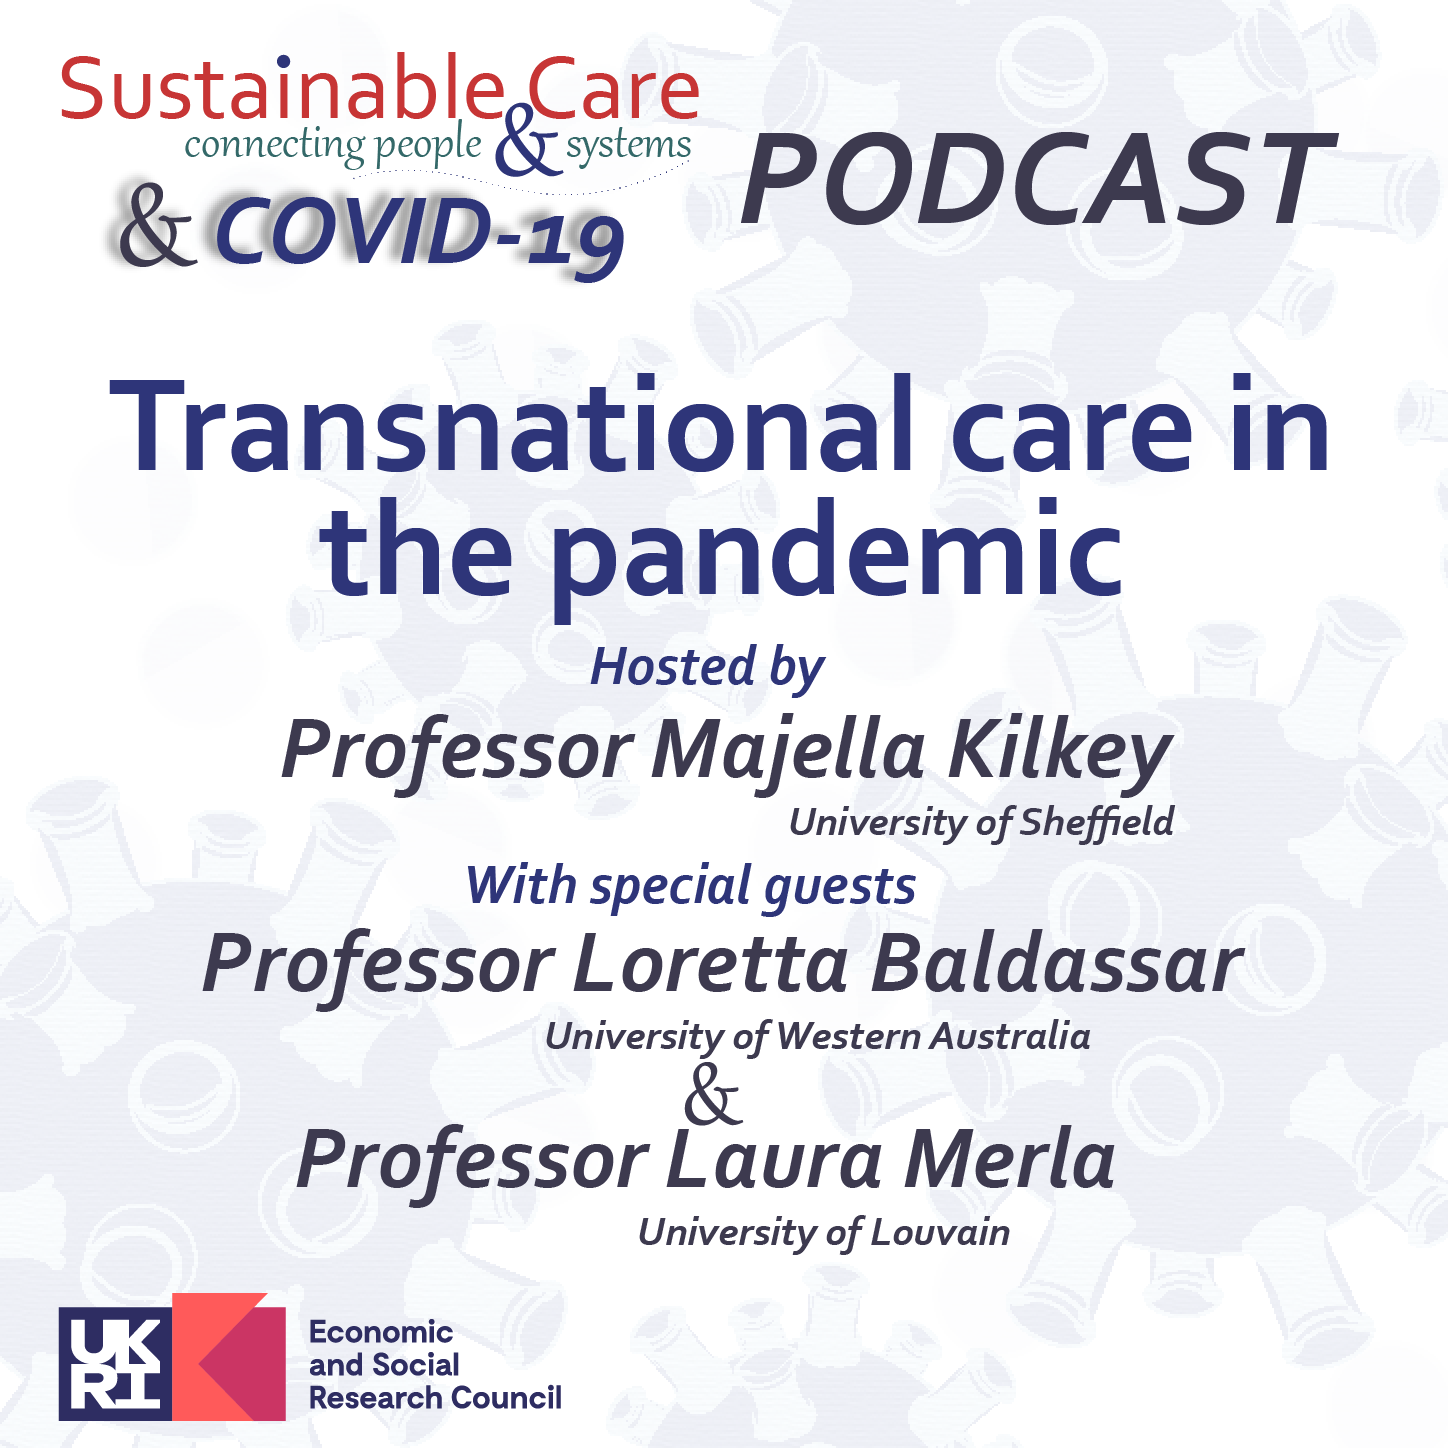 Sustainable Care & COVID-19: Transnational care in the pandemic